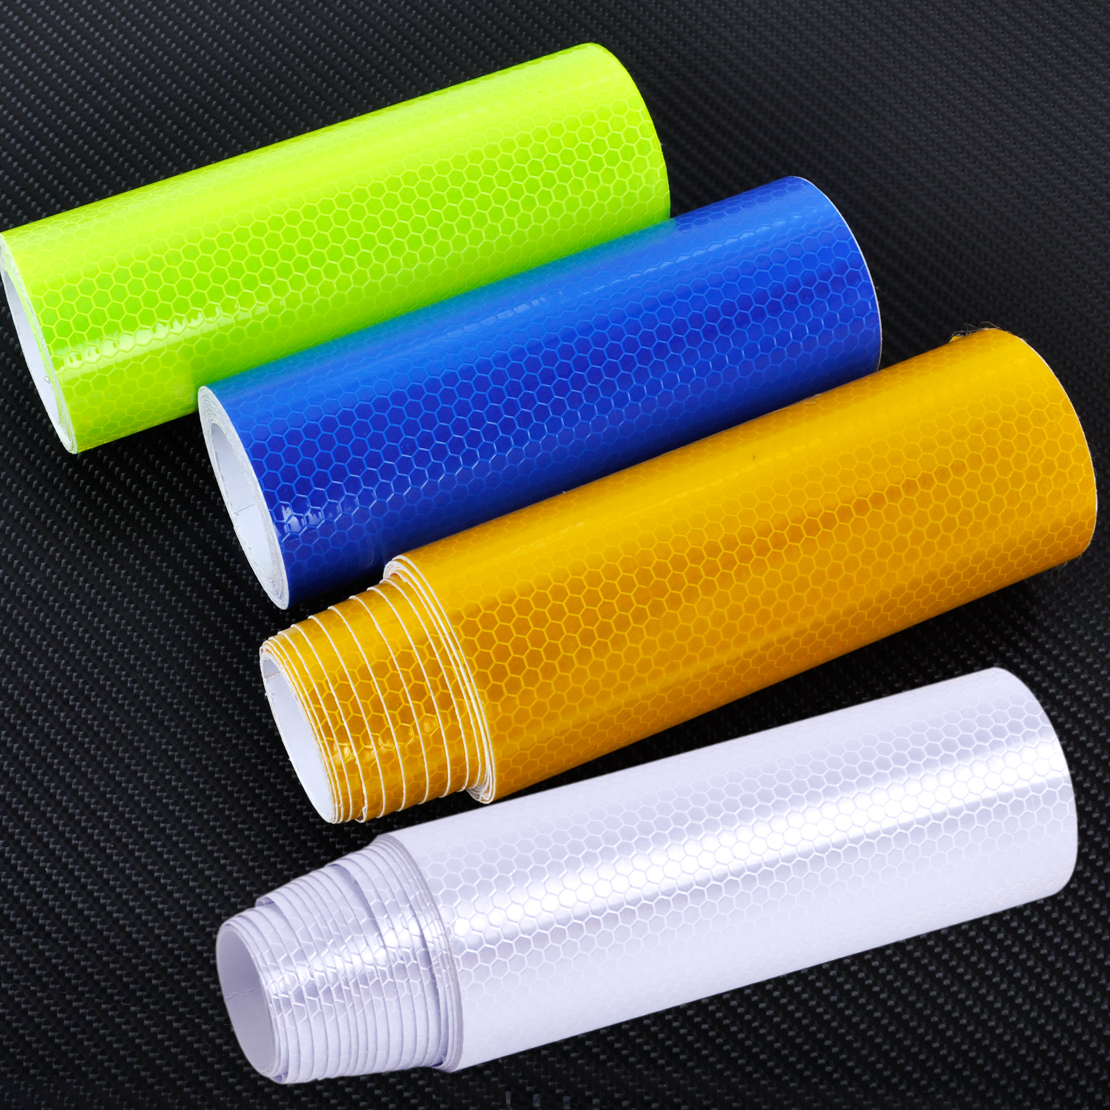 CITALL 4 Colors 3m X 15cm Reflective Safety Warning Conspicuity Tape Film Sticker Length 3M Smooth Surface Water Resistance